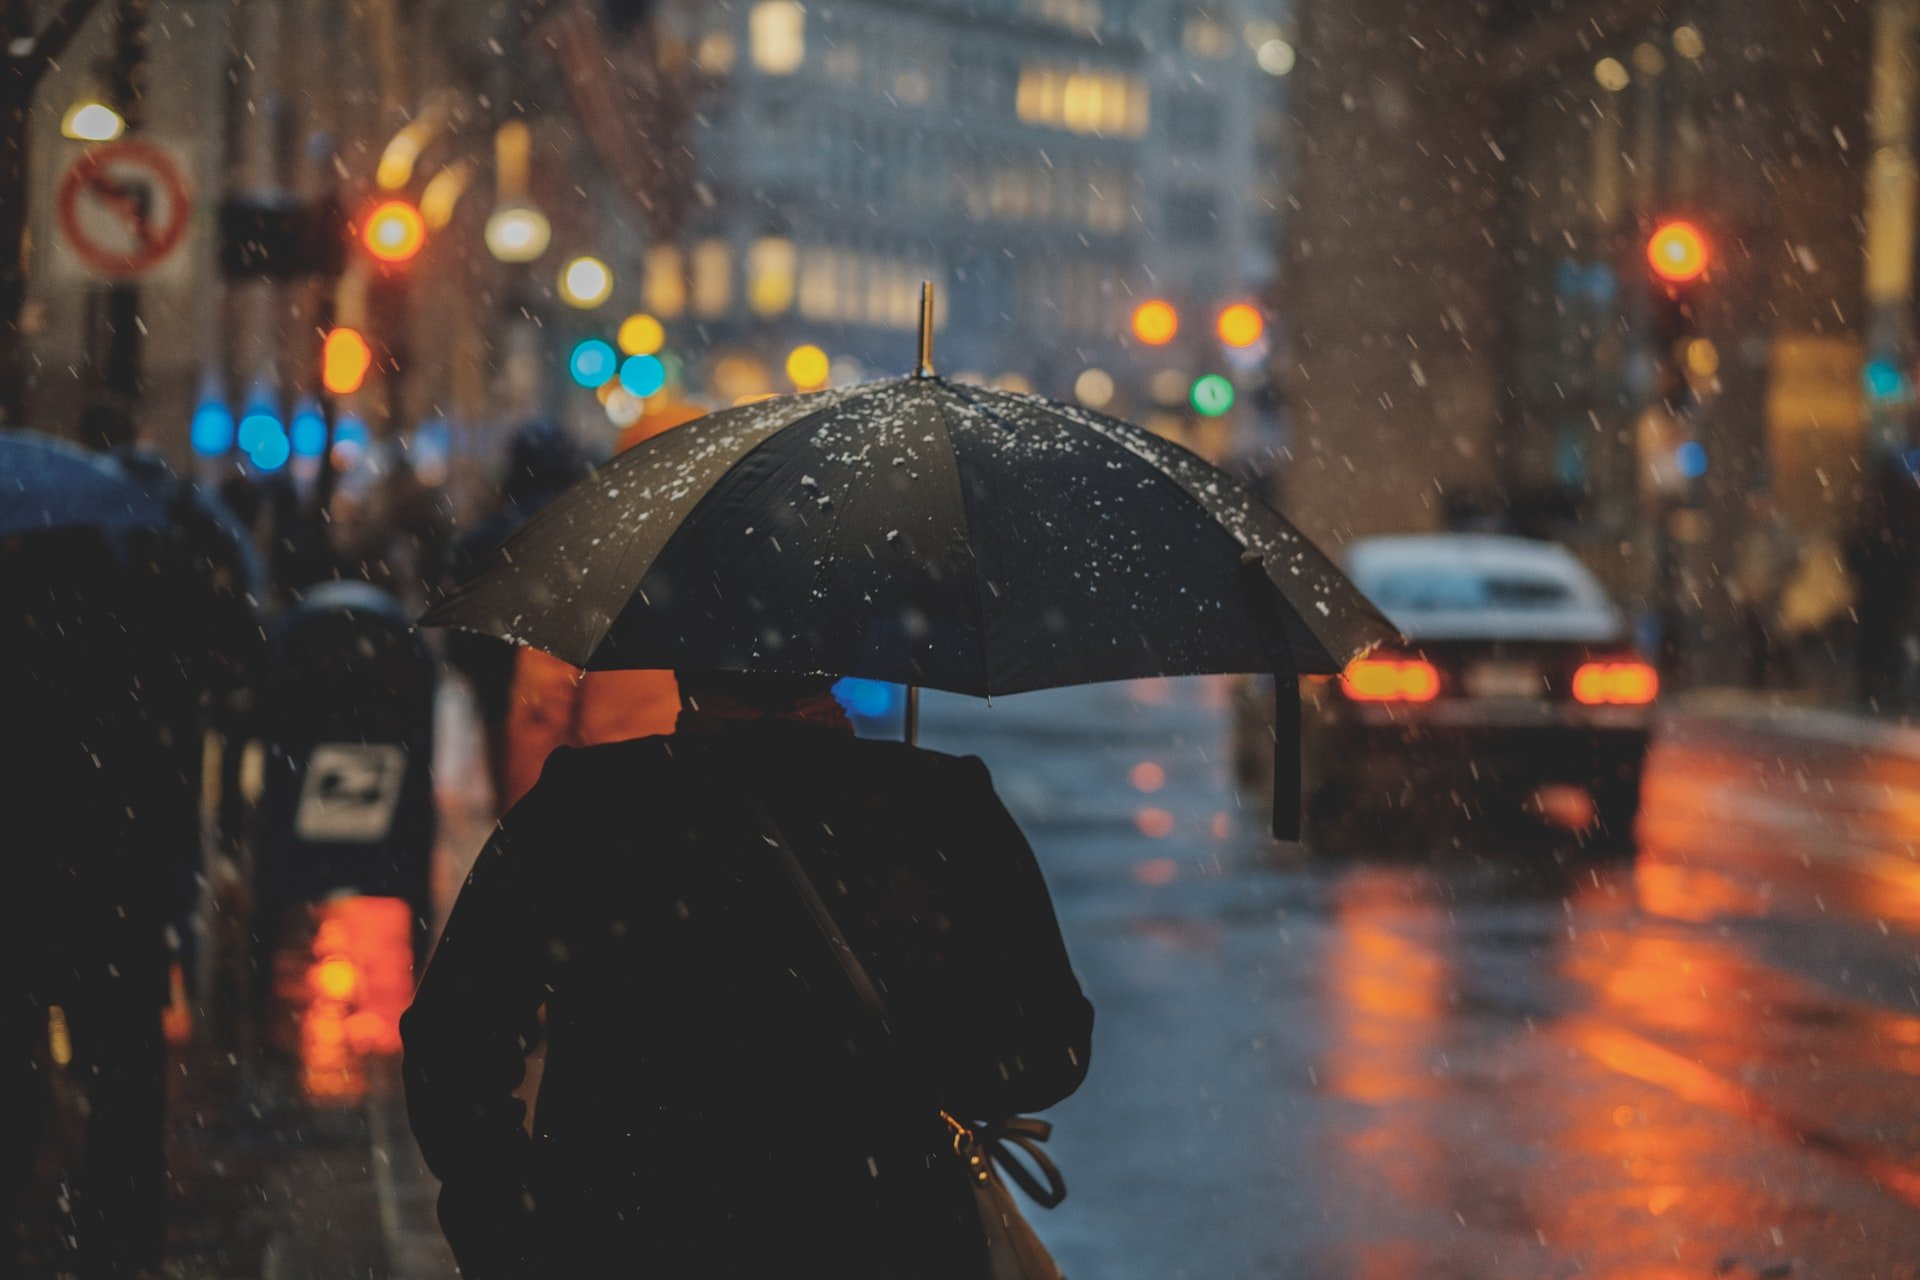 Tips For Riding An Electric Scooter In The Rain